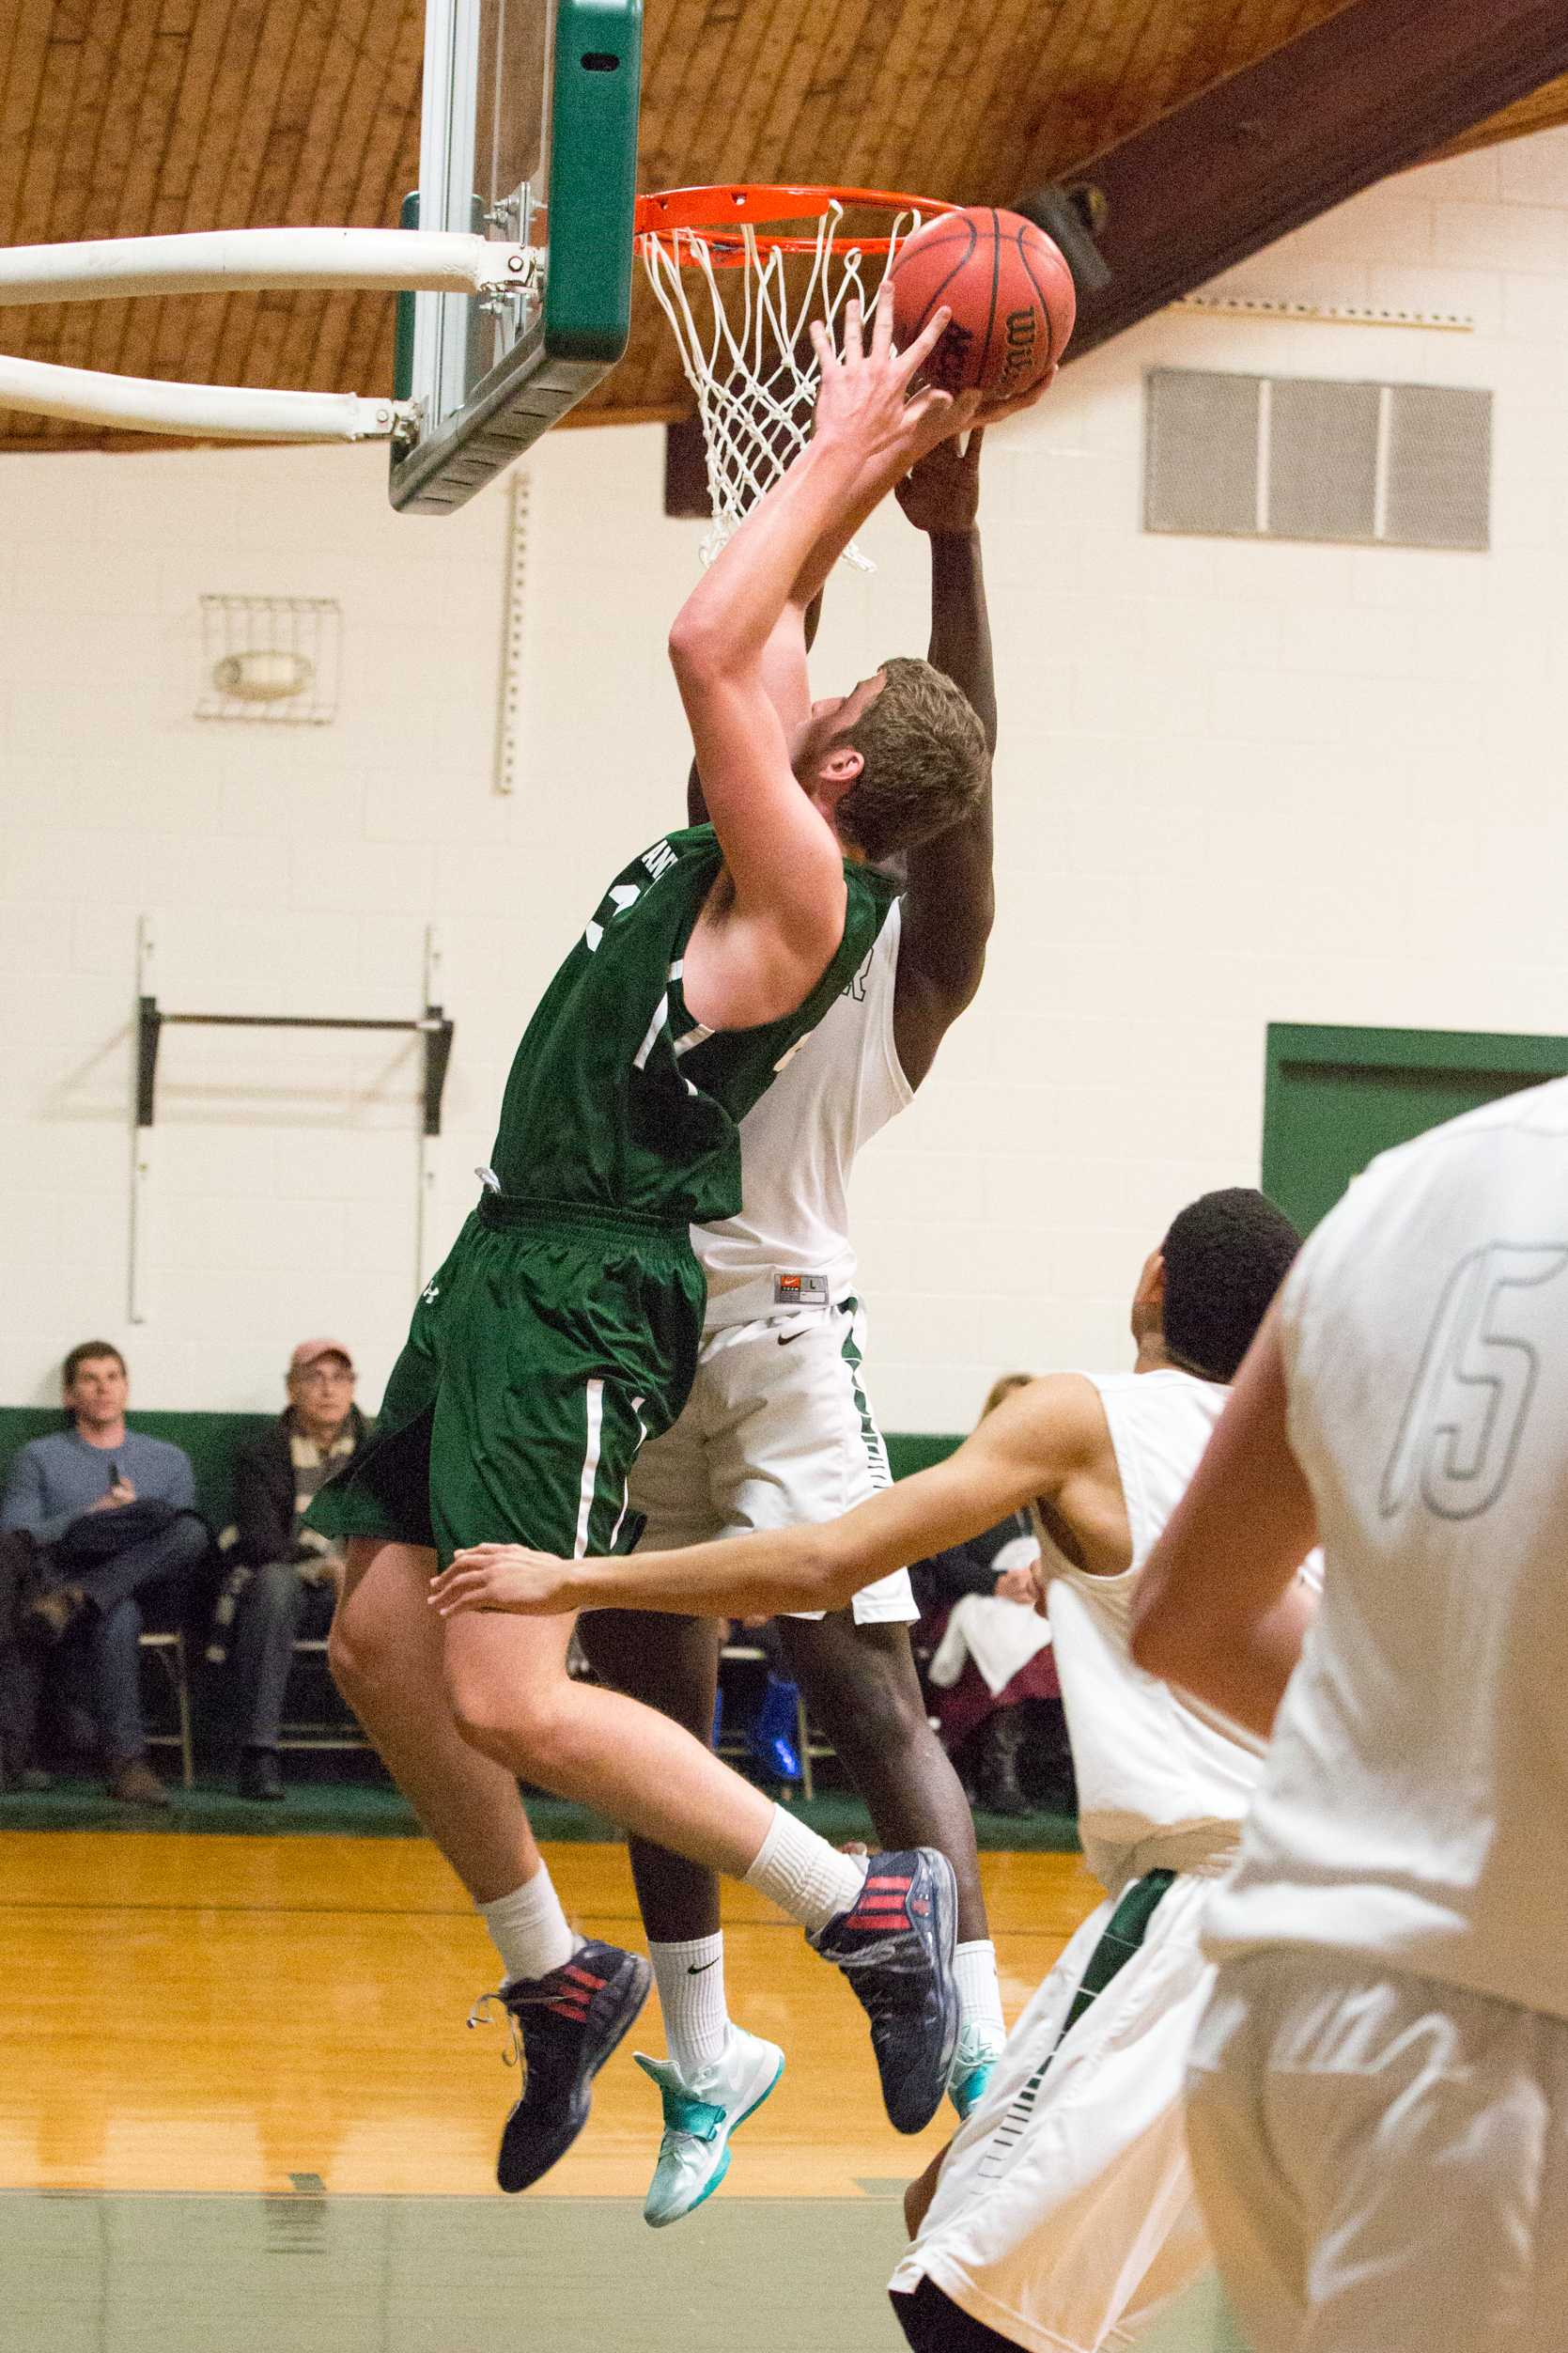 Mark Gasperini '16 takes it to the rim. Photo by David Barron.